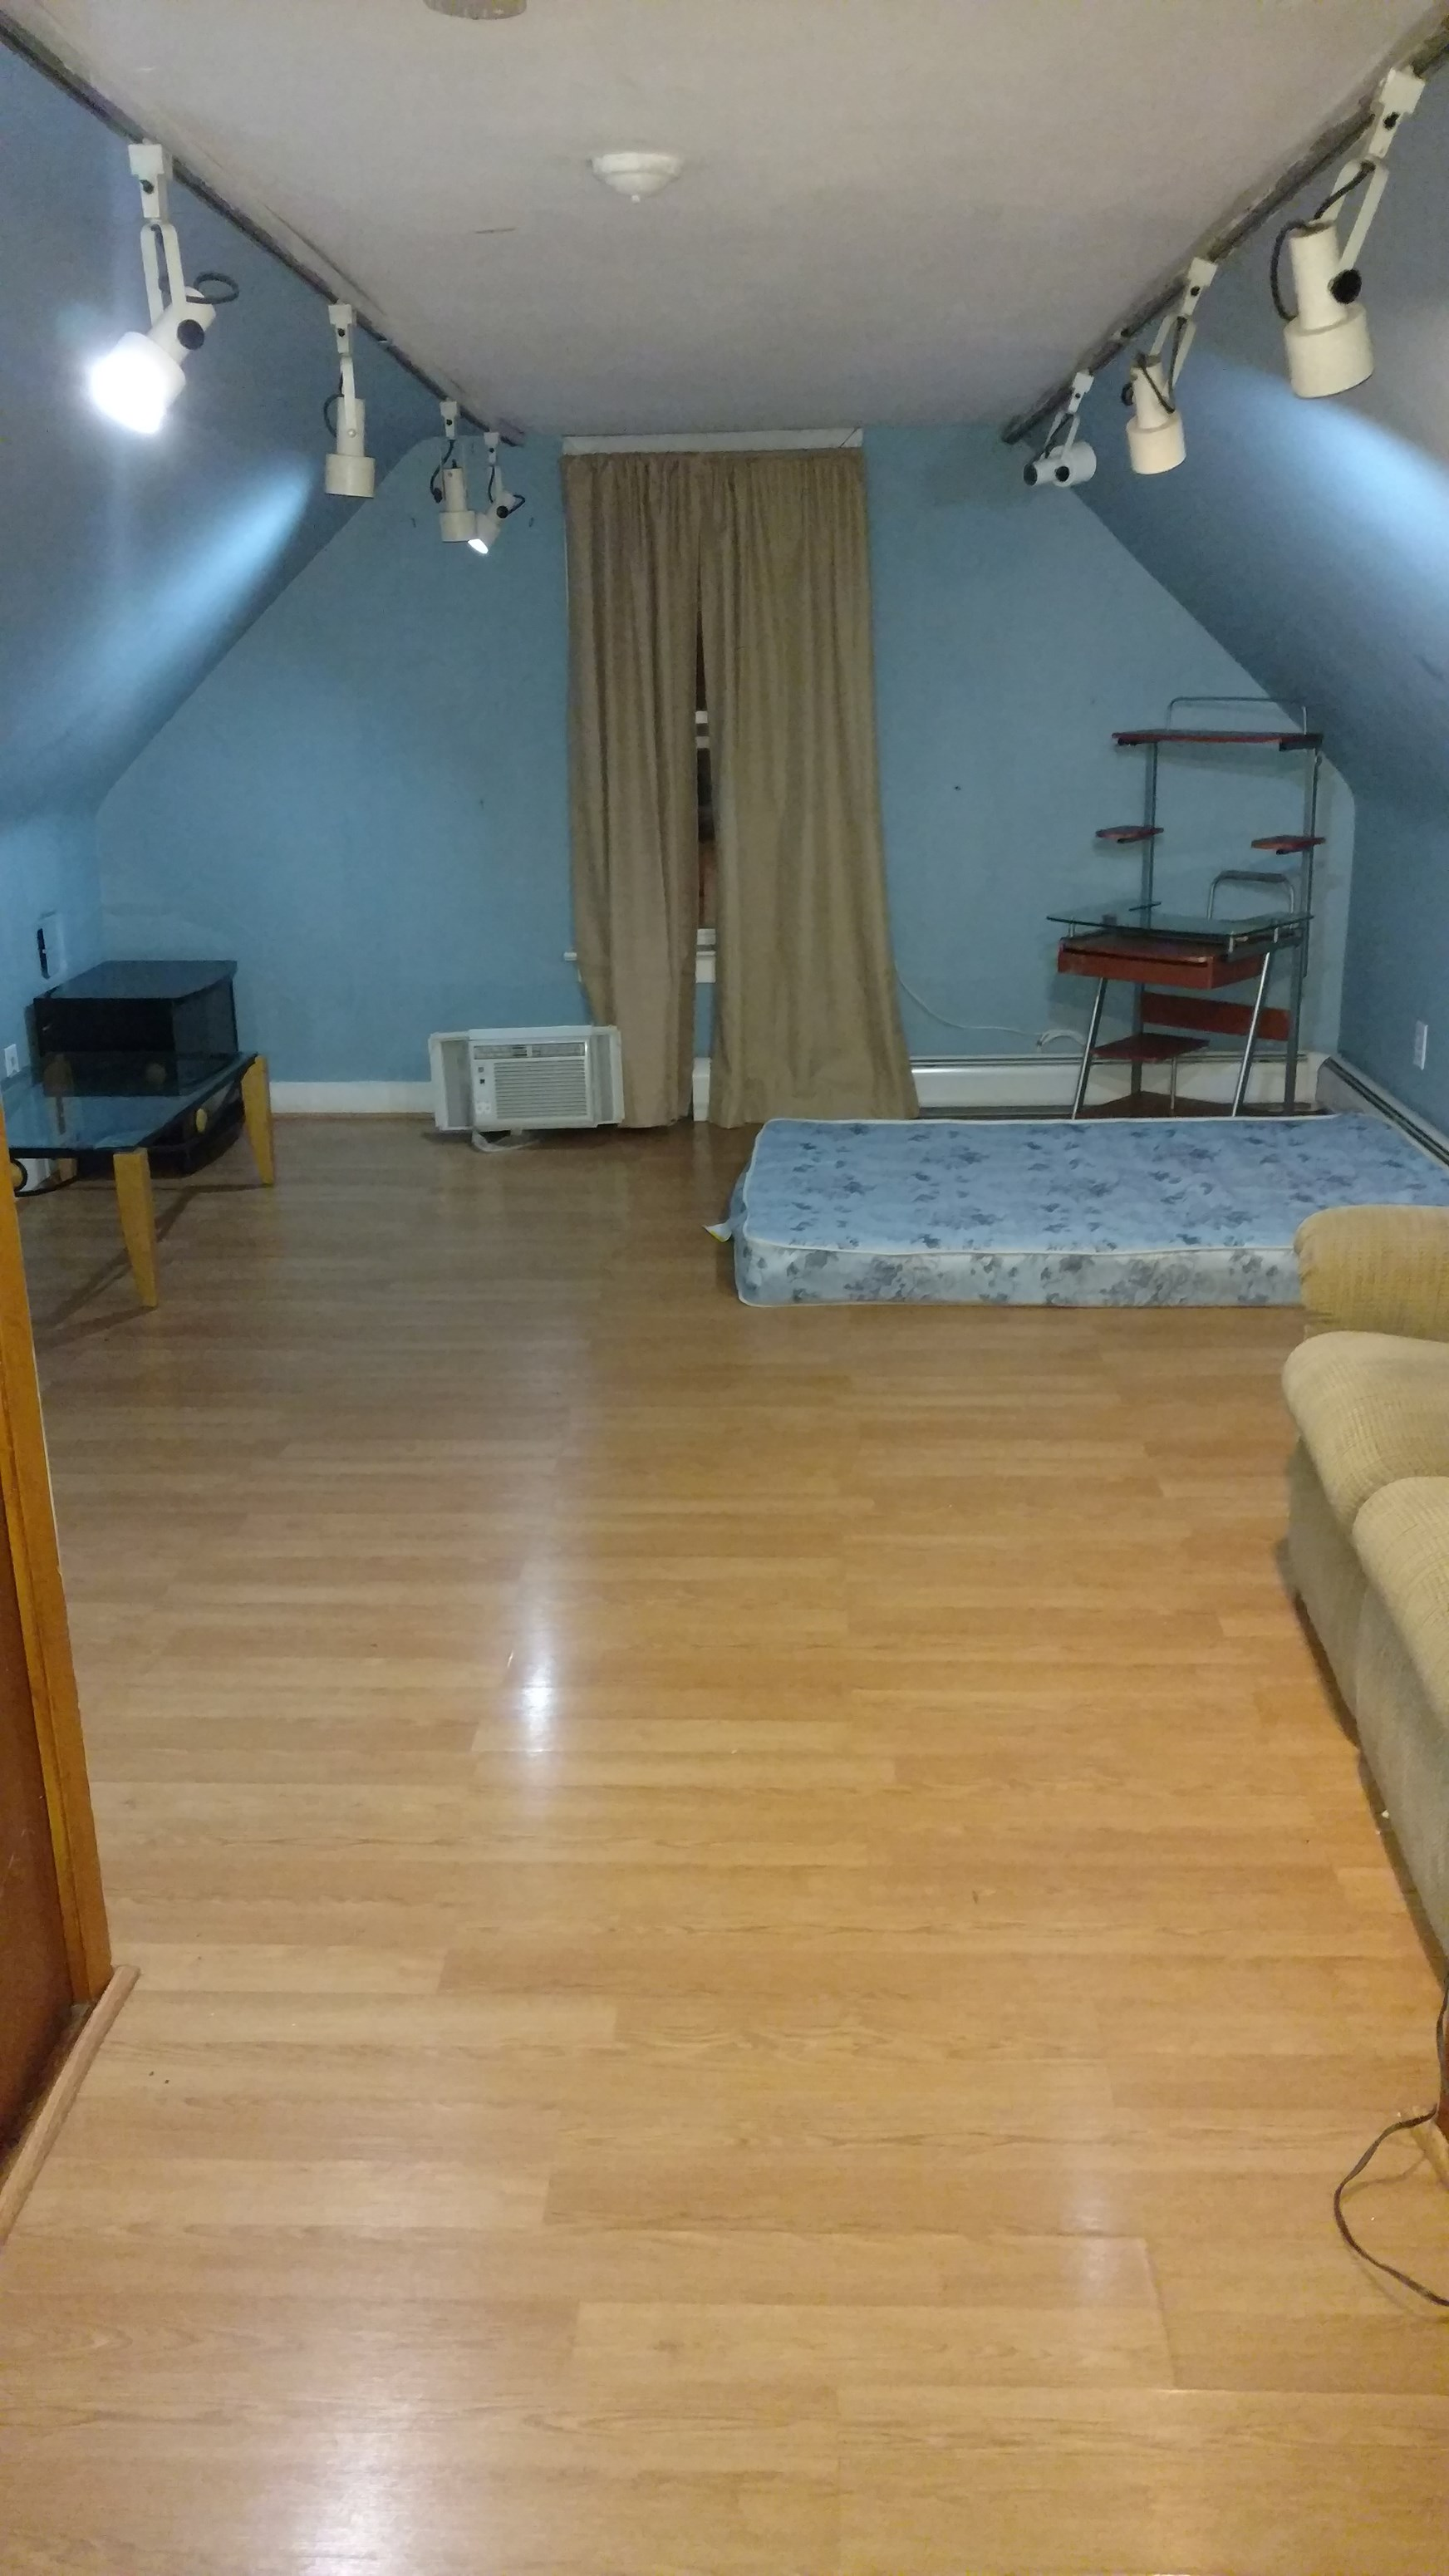 Bedroom For Rent In Two Family Home All Utilities Included Jersey City Journal Square Area In